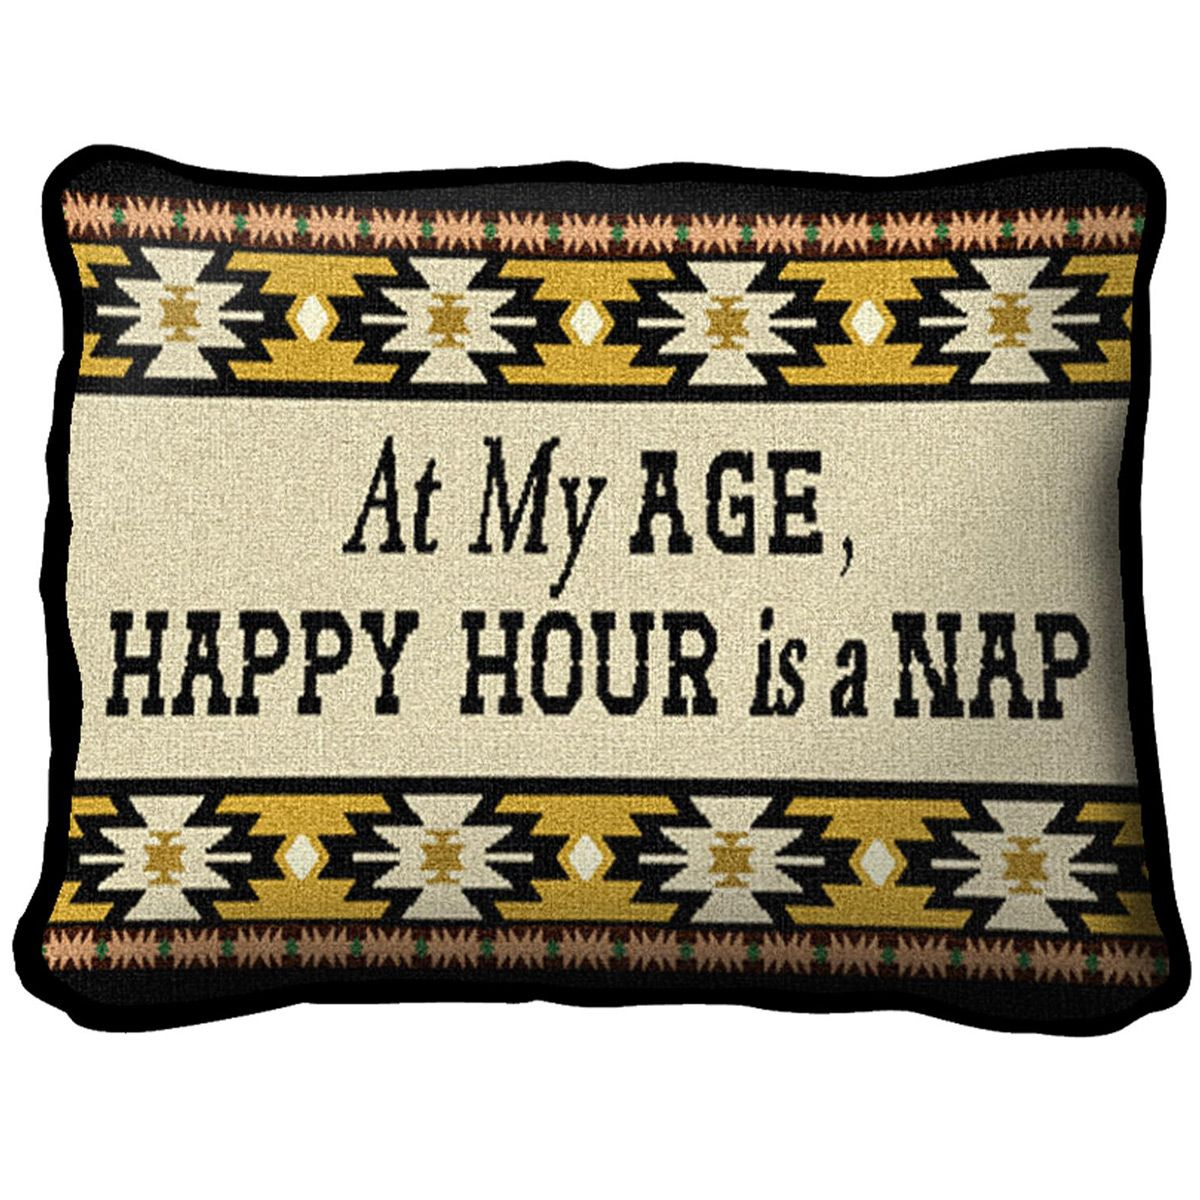 At My Age Southwest Pillow